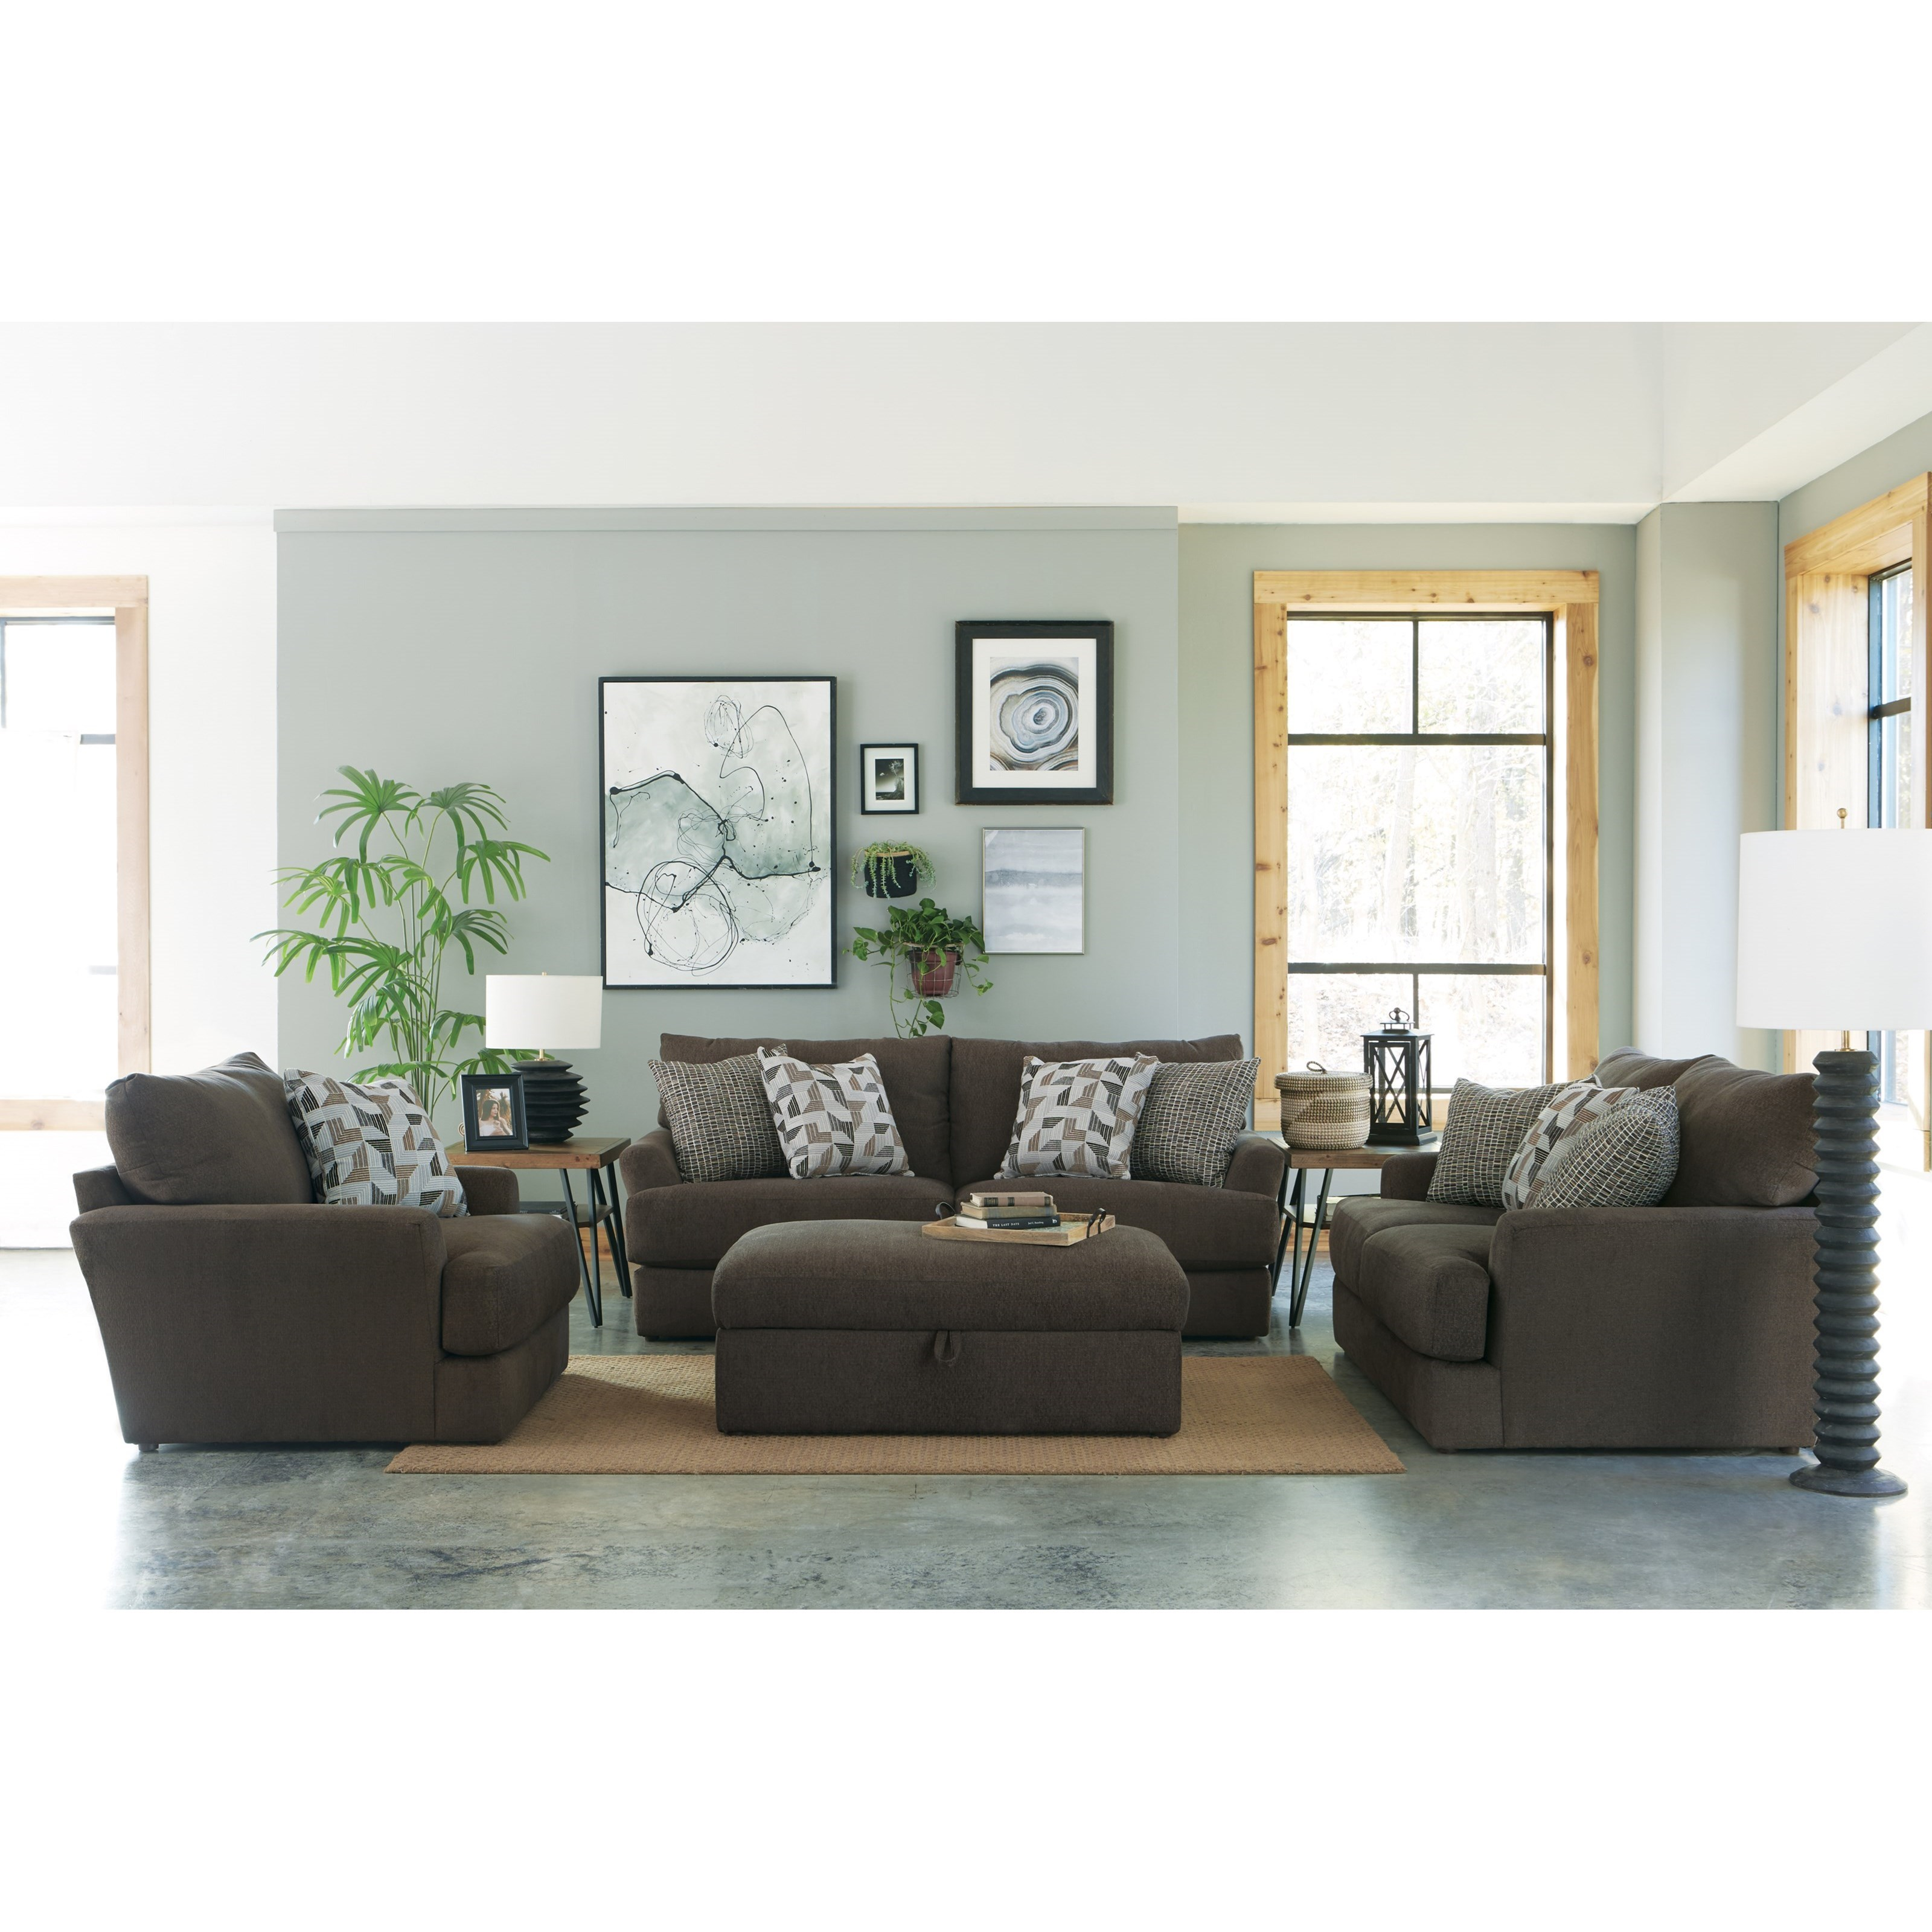 Copeland Stationary Living Room Group by Jackson Furniture at Northeast Factory Direct